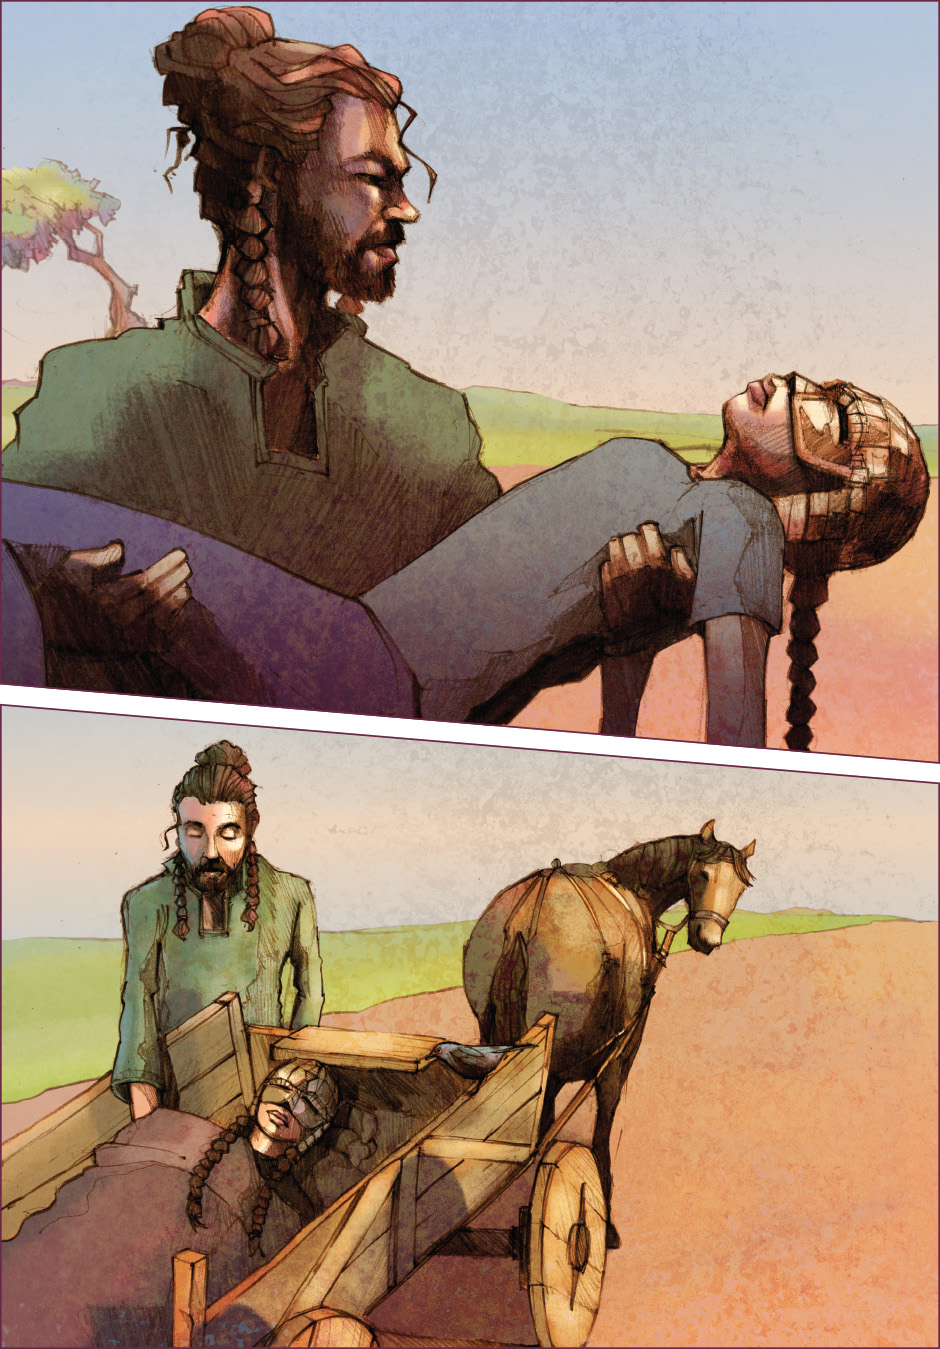 Lian Webcomic - Lian carried to the horse & cart by Wilbur